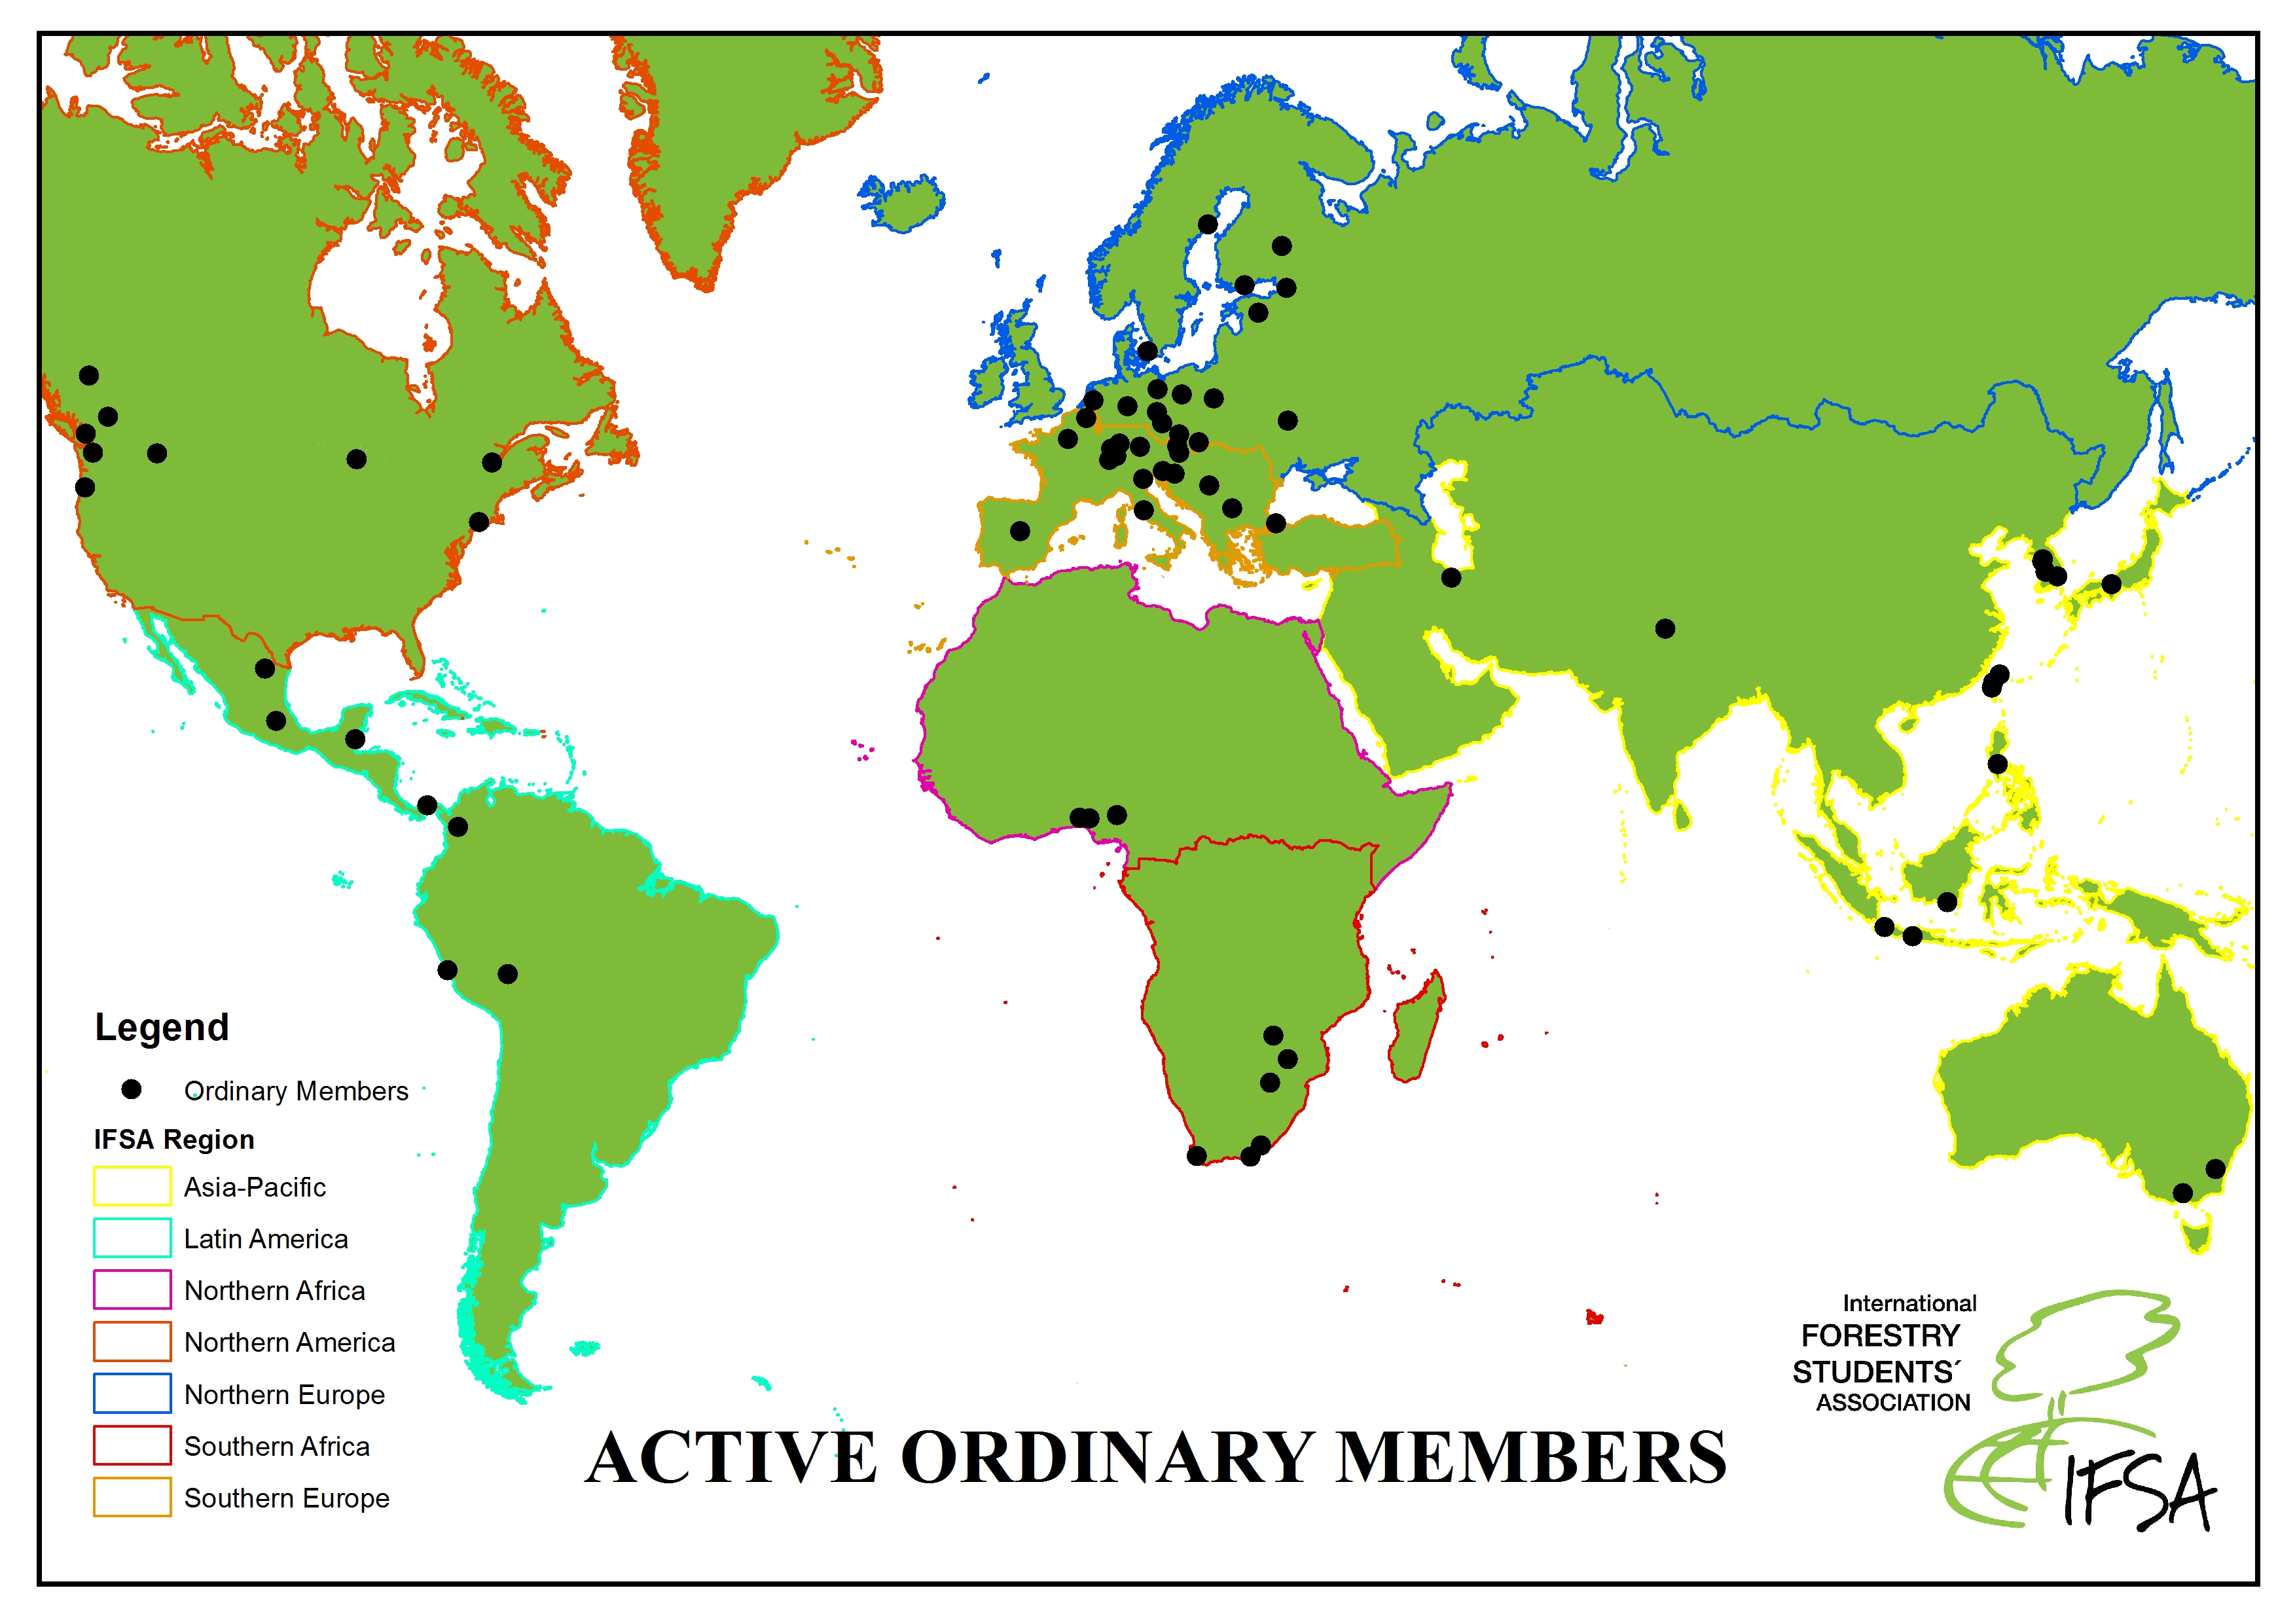 Active Ordinary Members 2